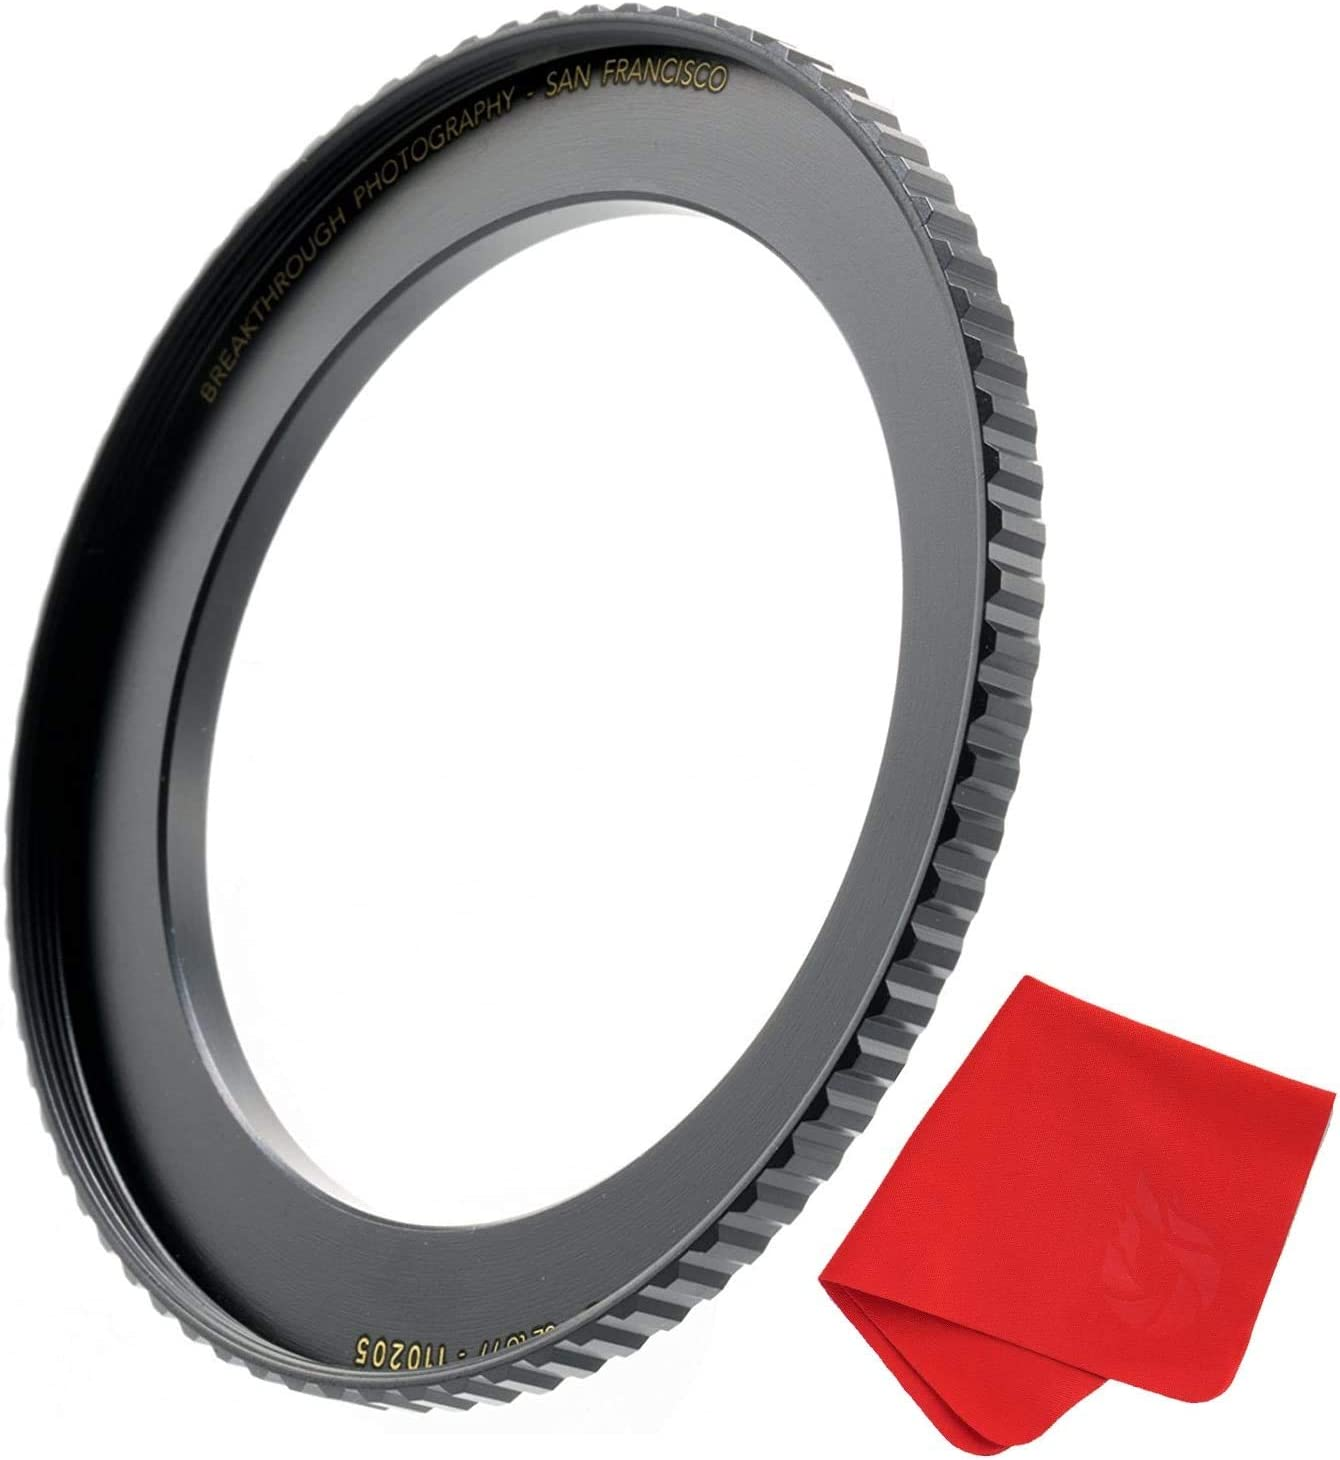 Made of CNC Machined Brass with Matte Black Electroplated Finish Breakthrough Photography 58mm to 82mm Step-Up Lens Adapter Ring for Filters